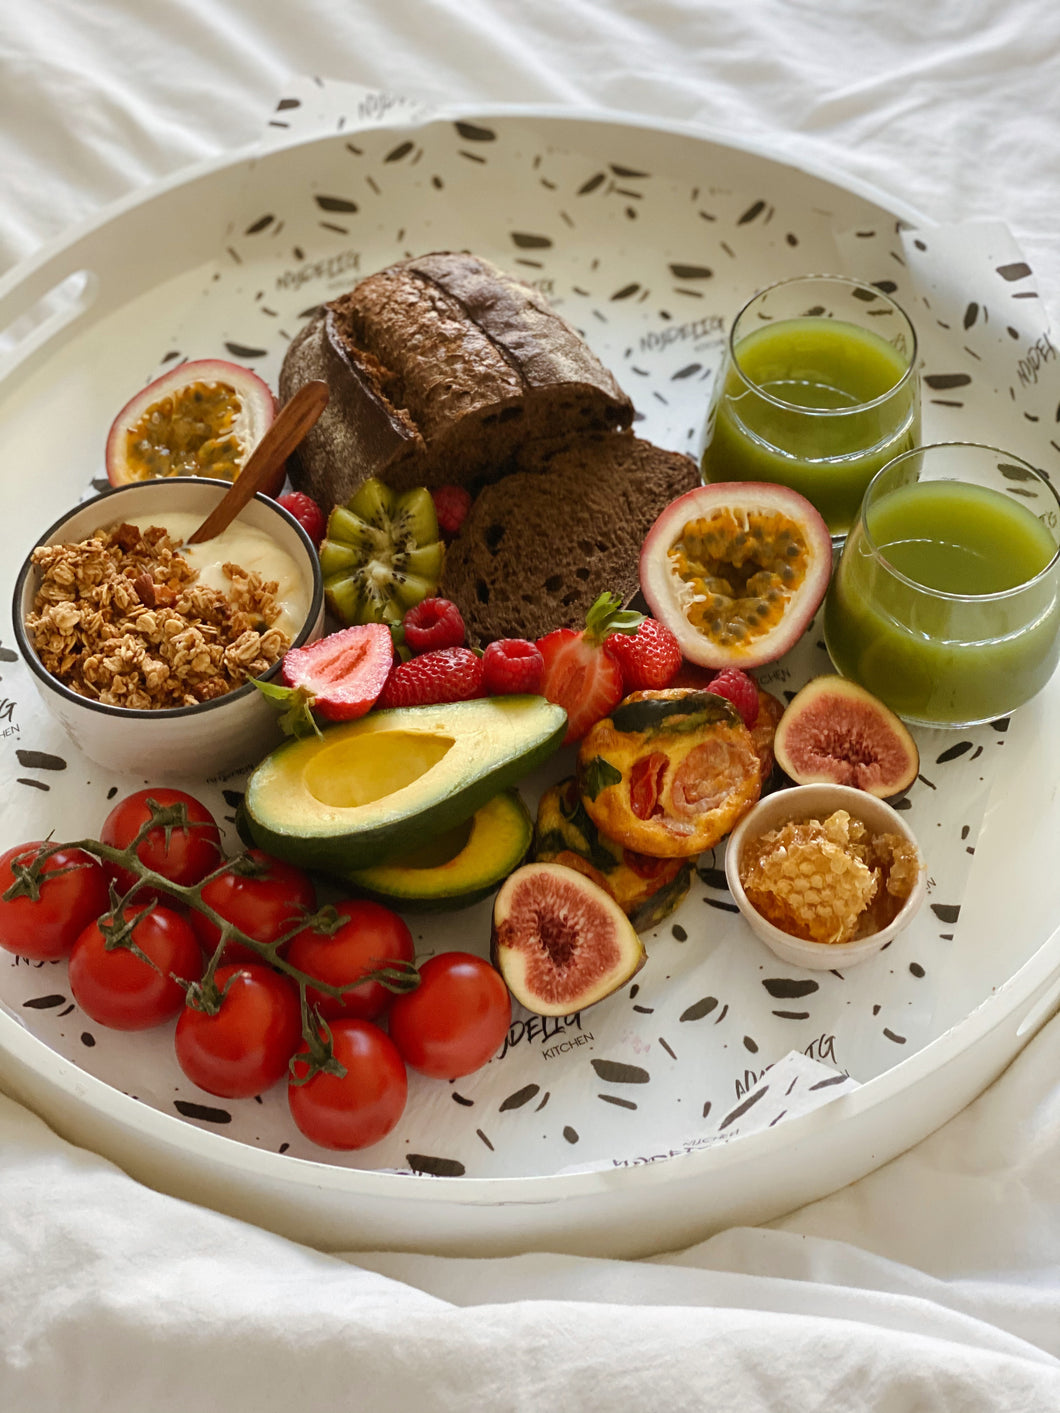 Healthy Start Breakfast (serves 2)